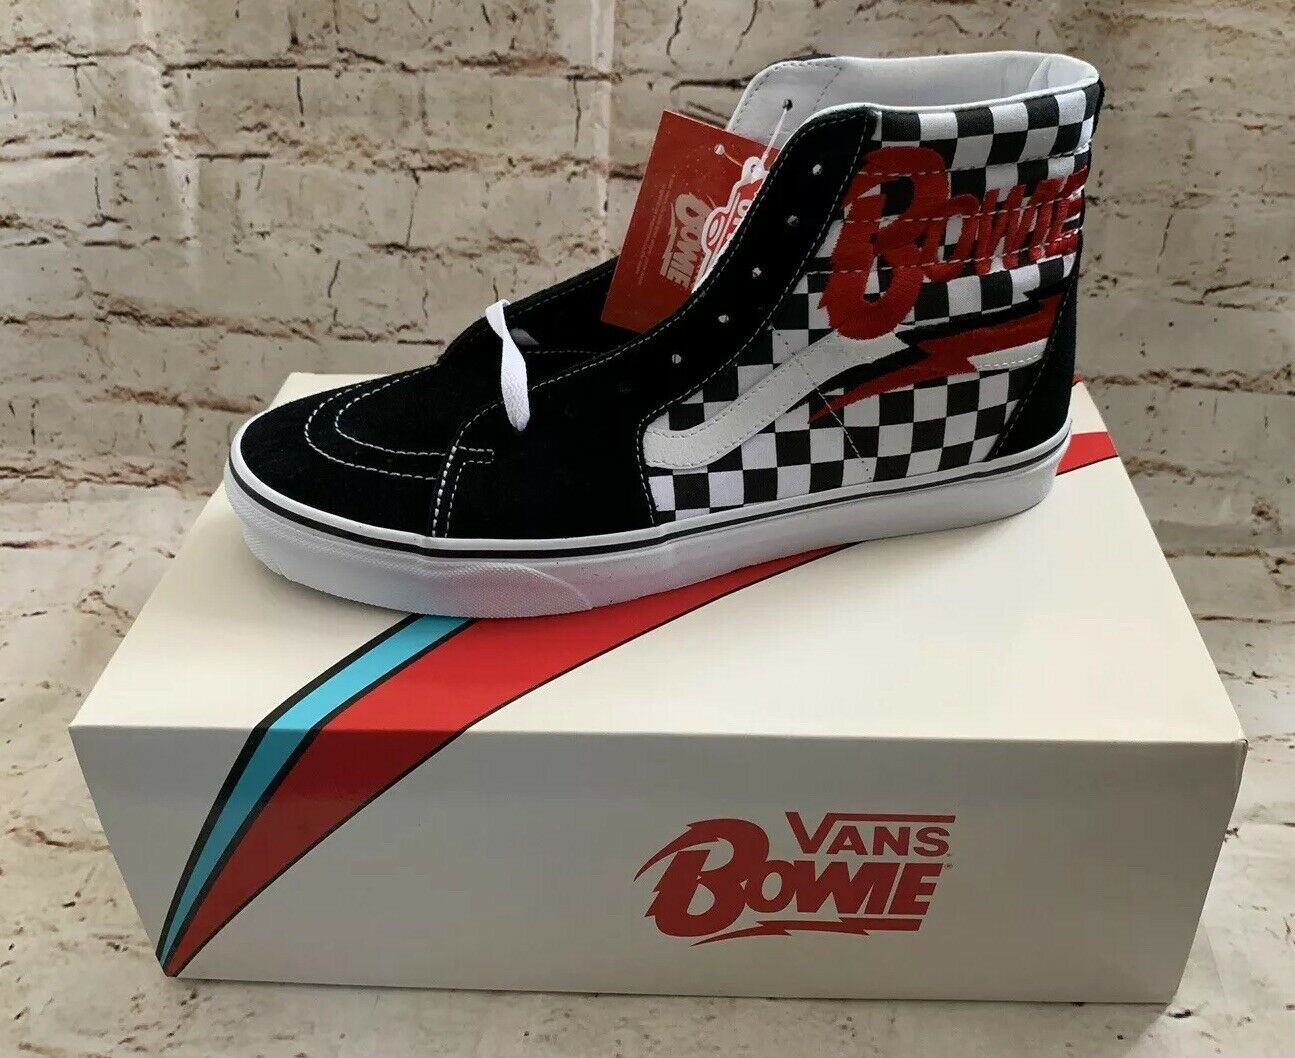 c10e1685a Vans Bowie Hi s. Size 12 Mens. NIB NWT Sk8 David nvepnu6397-Athletic ...